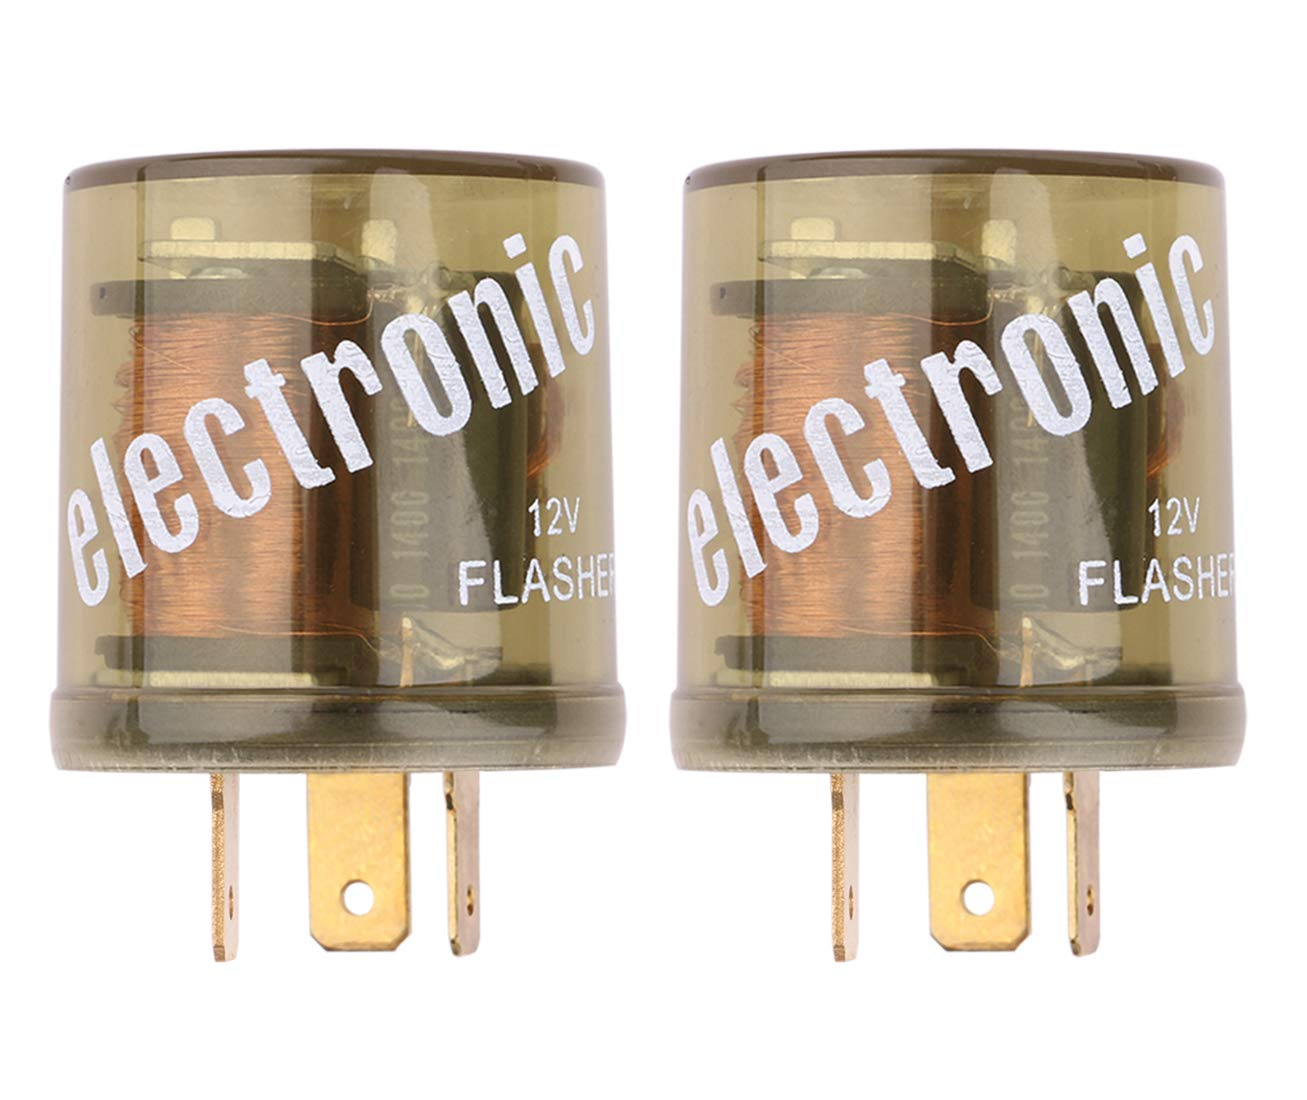 Electronic Flasher Relay, Sdootauto Heavy Duty Turn Signal Flasher Relay 3 Pin 12V LED Compatible for Motors Turn Signal & Hazard Warning- 2 Pack